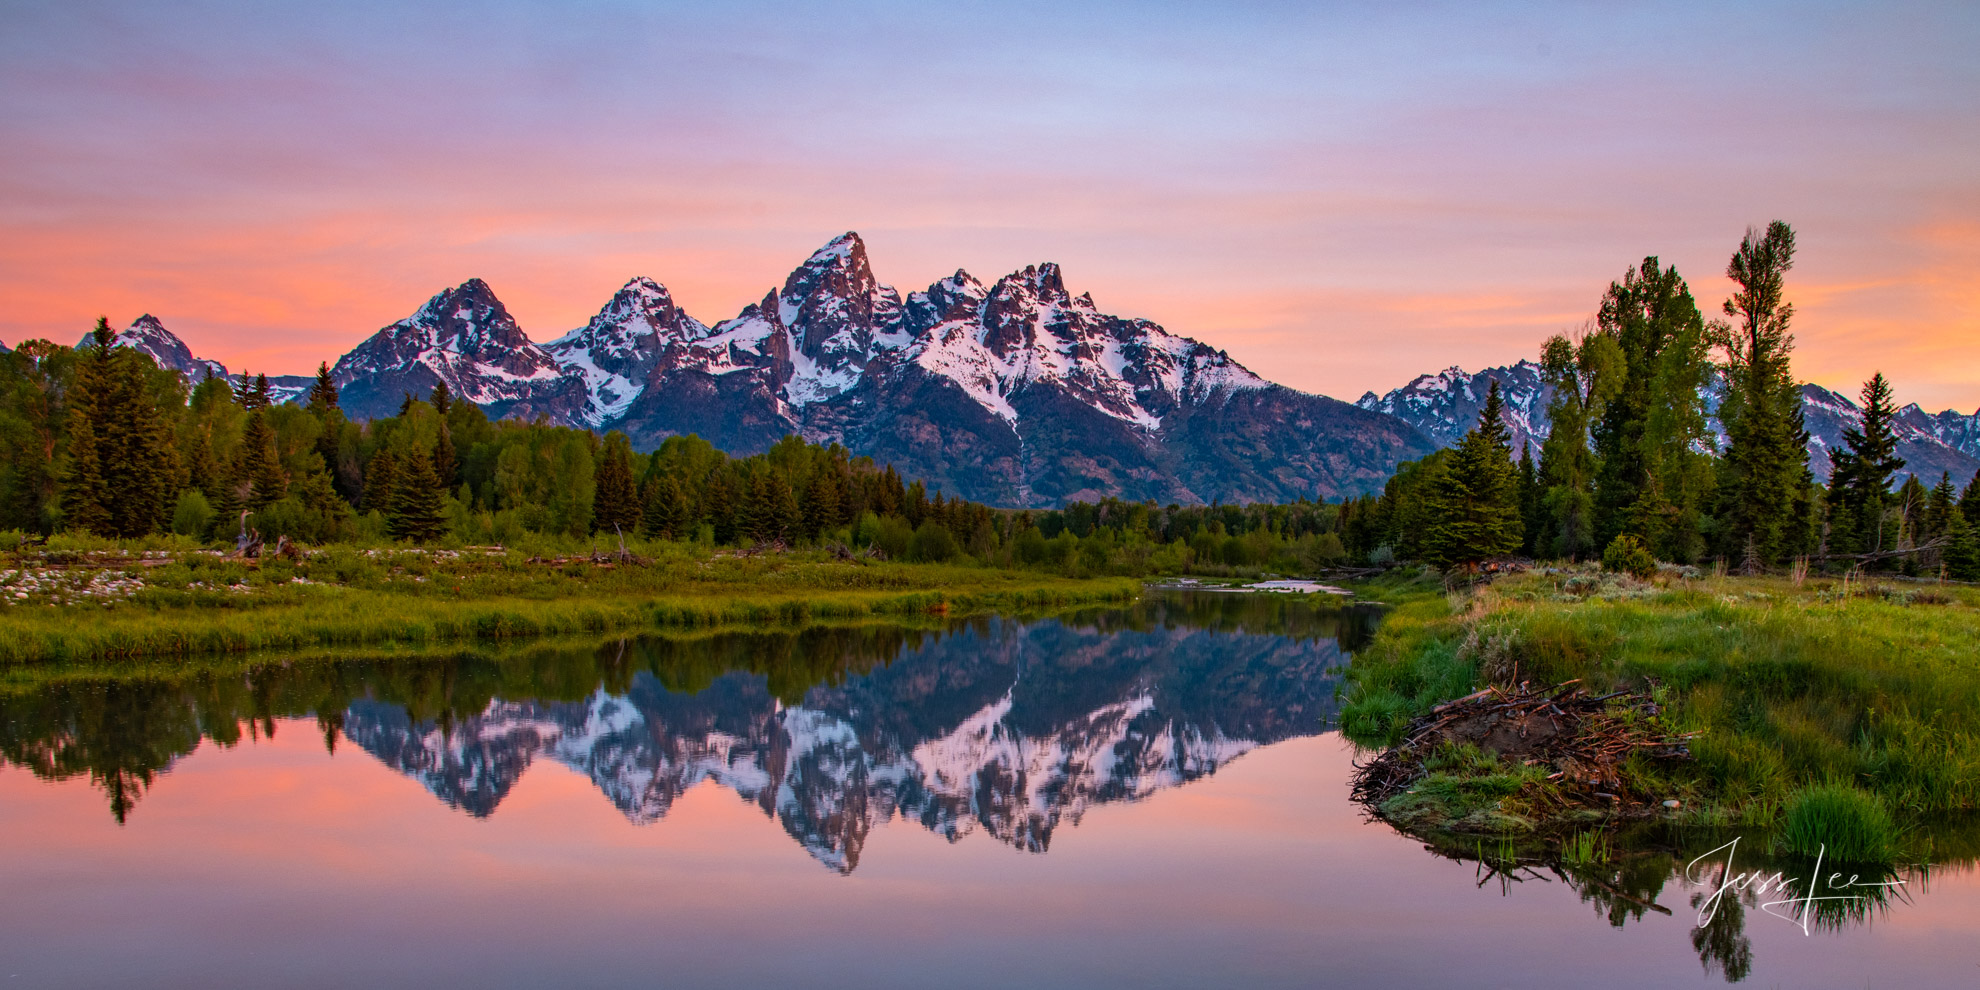 photo of Grand Tetons in Wyoming, Snake River photo, mountain photography, reflection in water, lake, river, fine art print, high resolution, quality, nature, wilderness, trees, evergreens, sunrise, s, photo